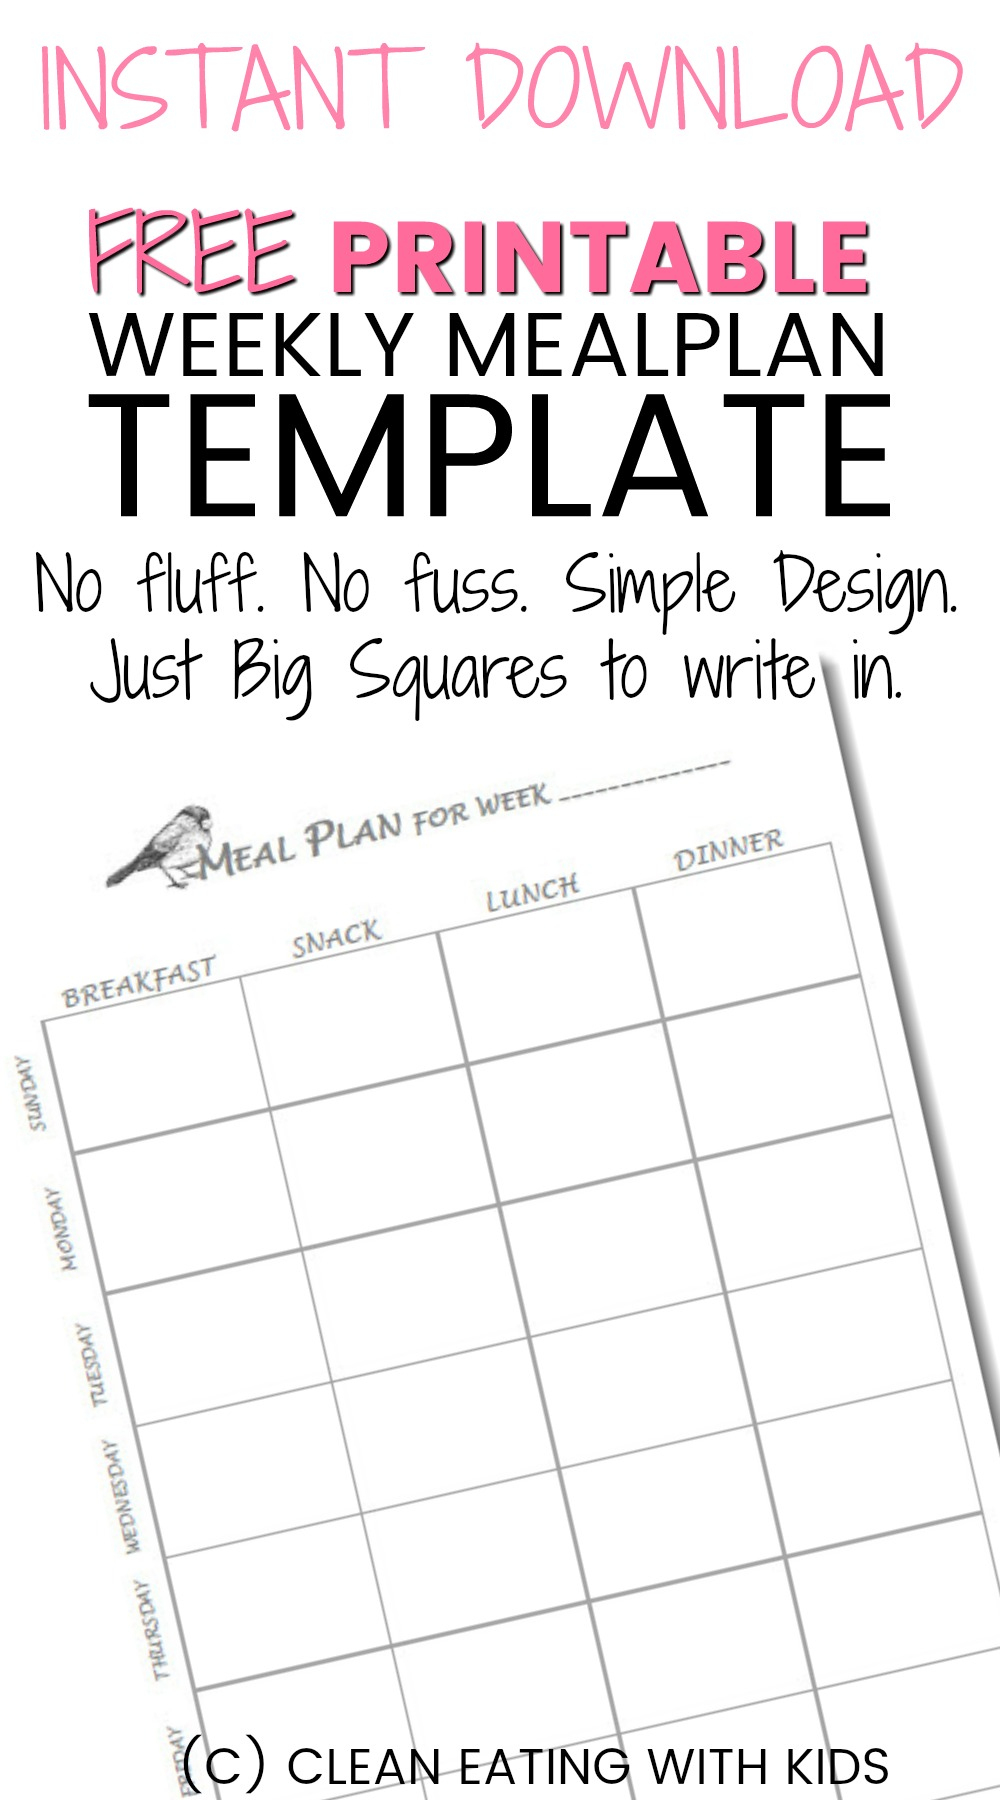 Free Printable Weekly Meal Plan Template - Clean Eating With Kids - Design A Menu For Free Printable